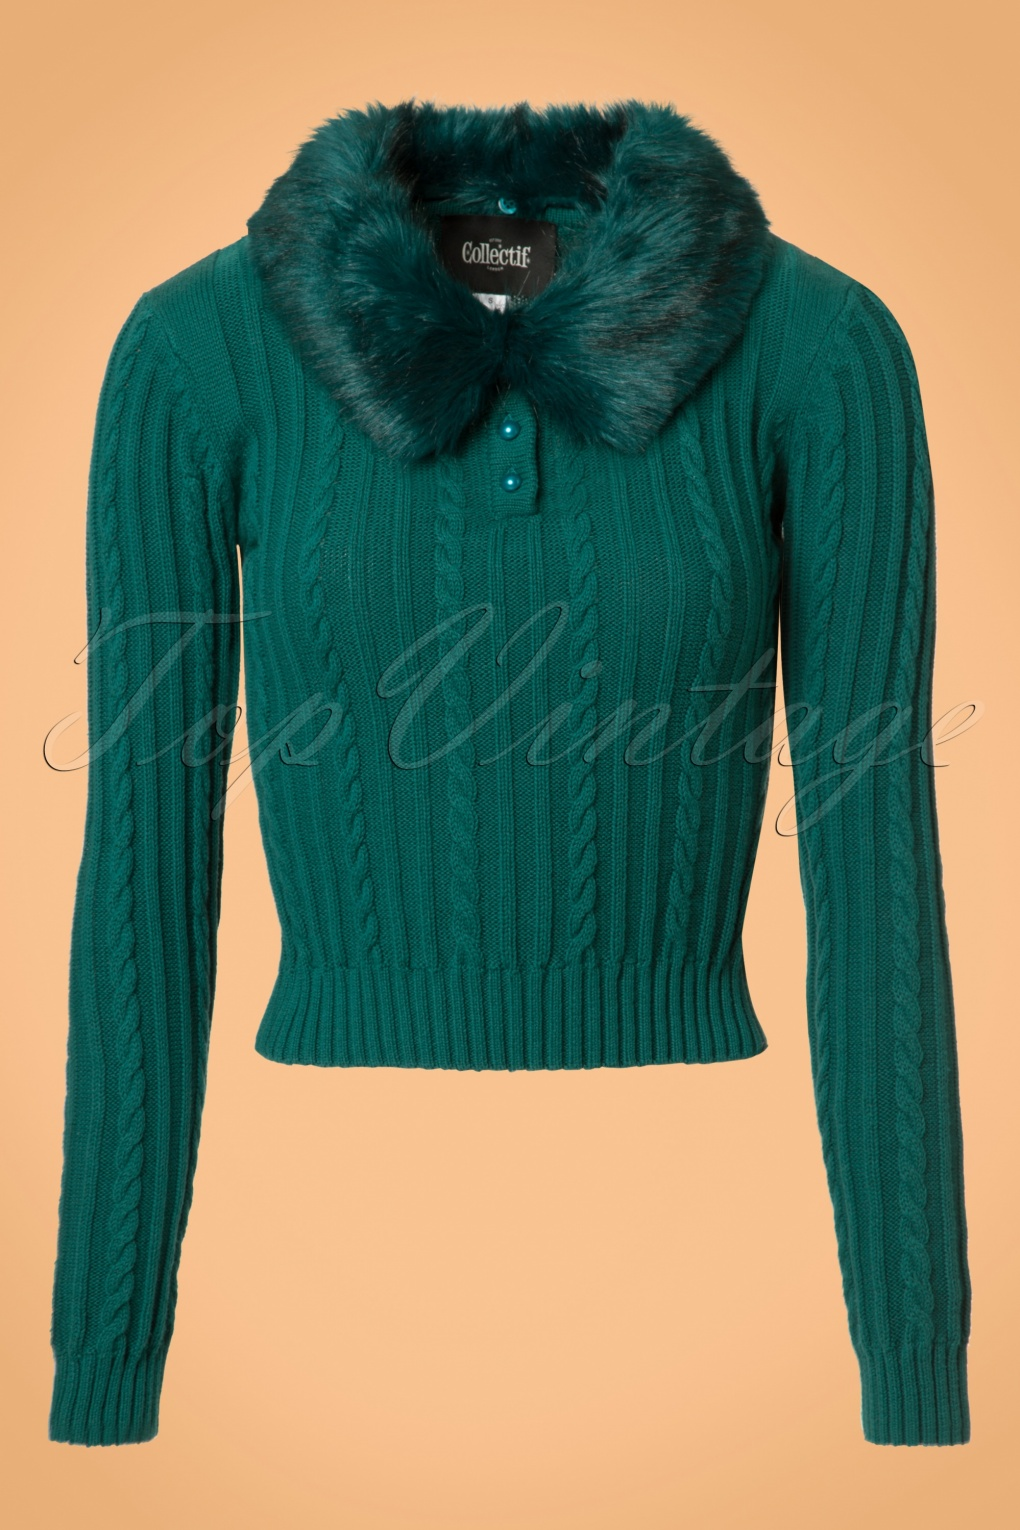 Vintage Sweaters: Cable Knit, Fair Isle Cardigans & Sweaters 40s Felicity Fur Collar Jumper in Teal £59.51 AT vintagedancer.com